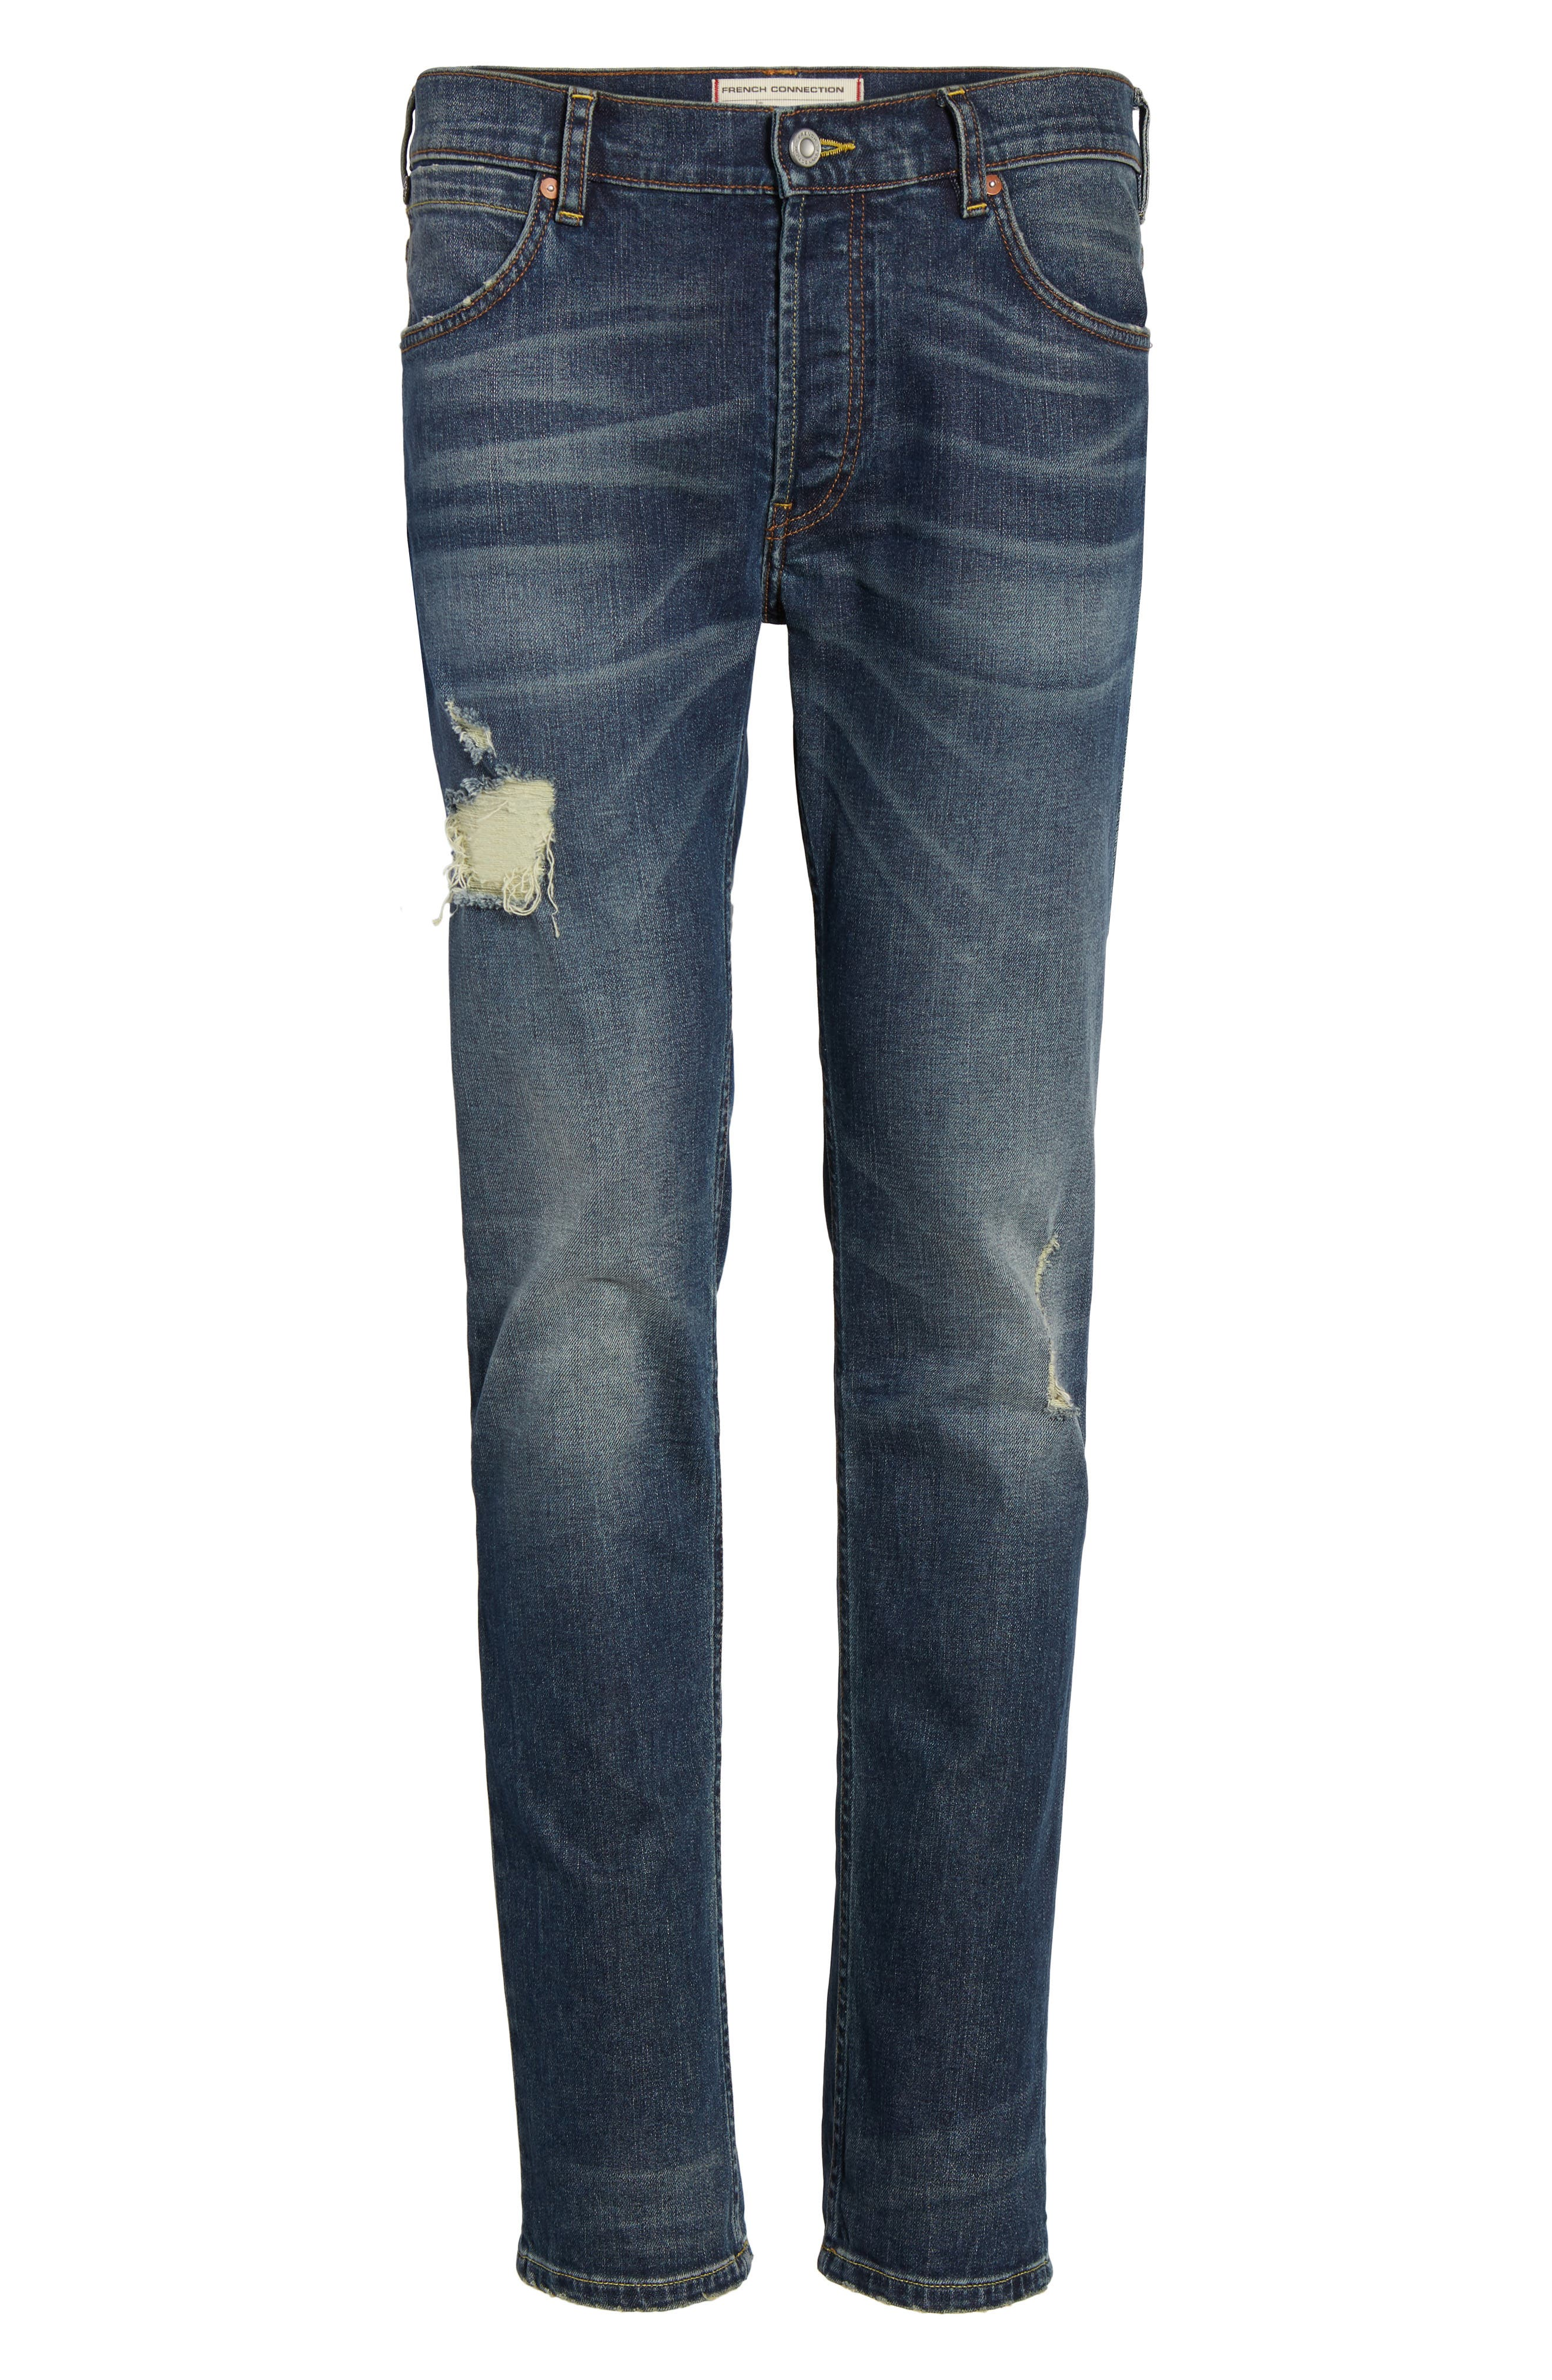 Slim Fit Distressed Jeans,                             Alternate thumbnail 6, color,                             420